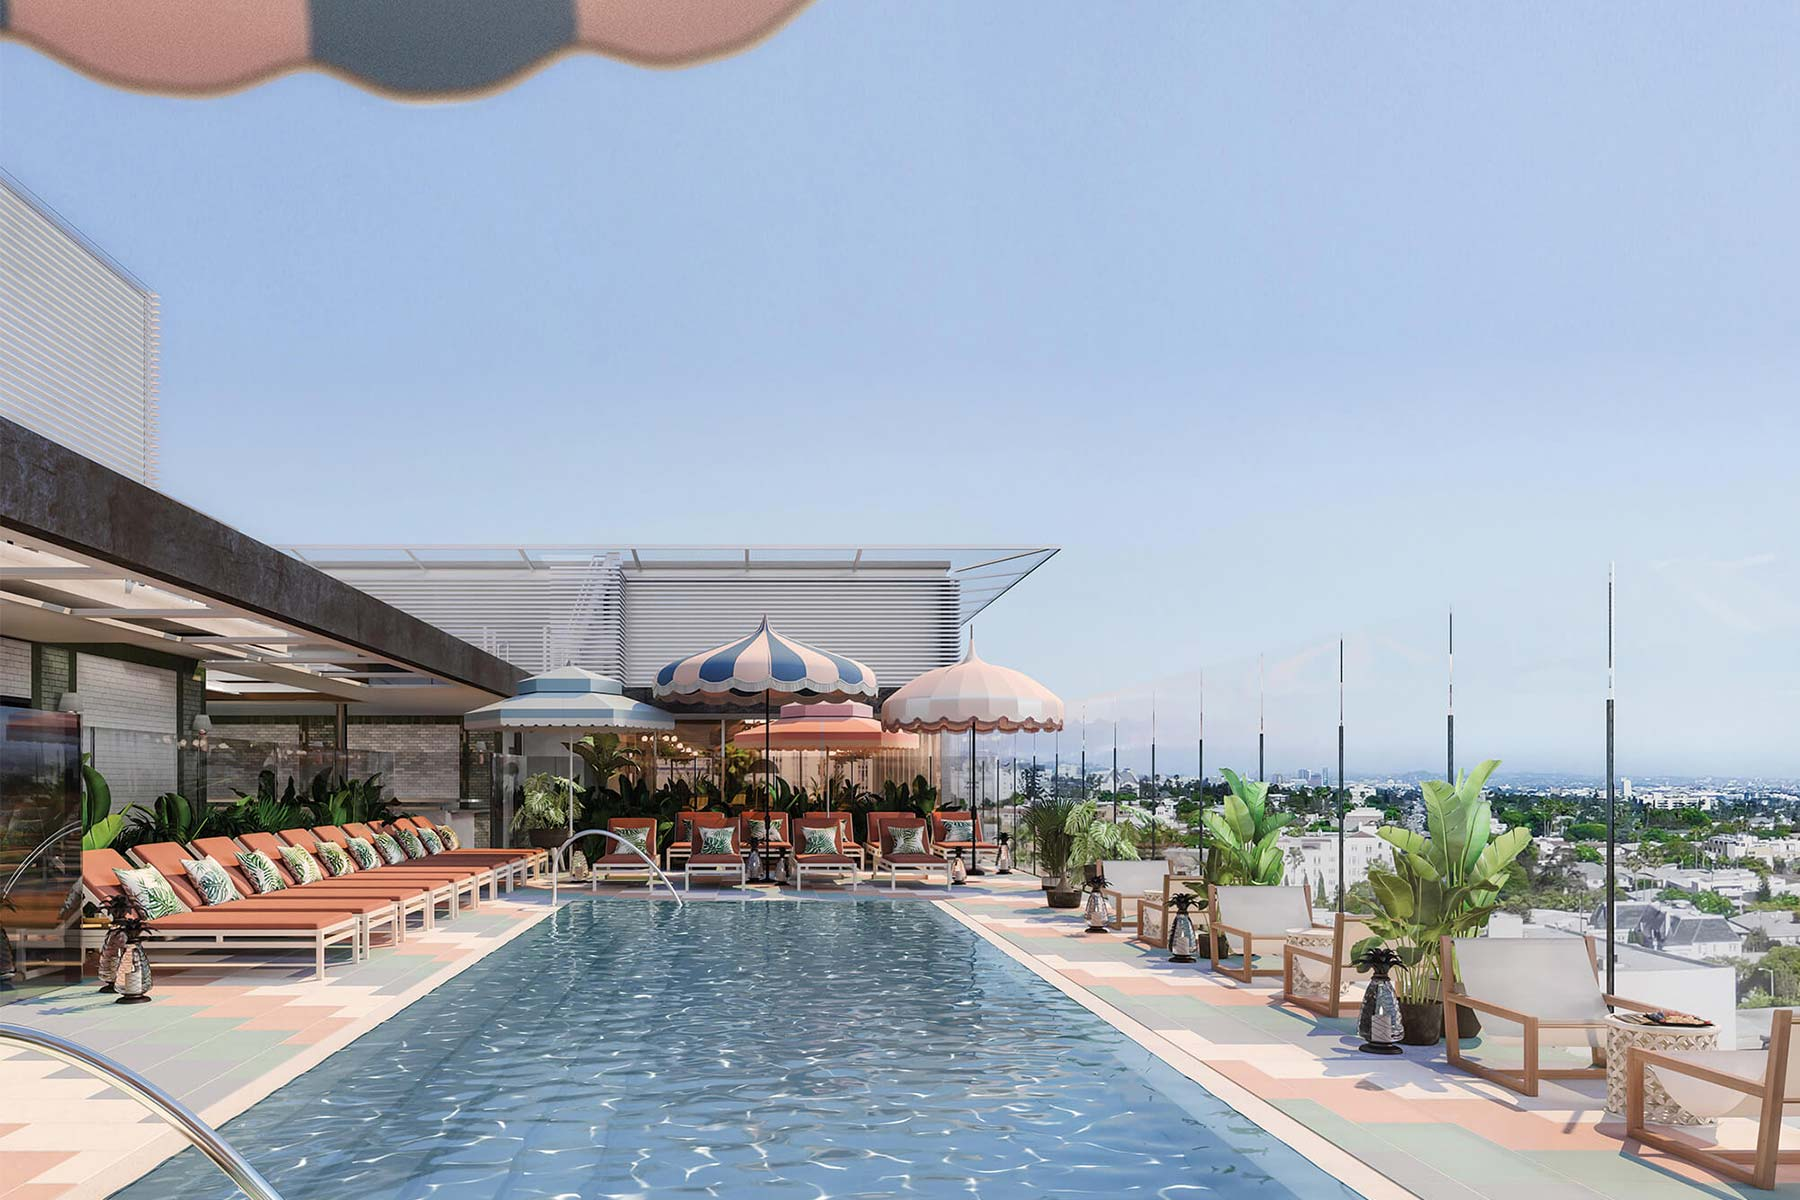 Rooftop Pool at Pendry West Hollywood Hotel